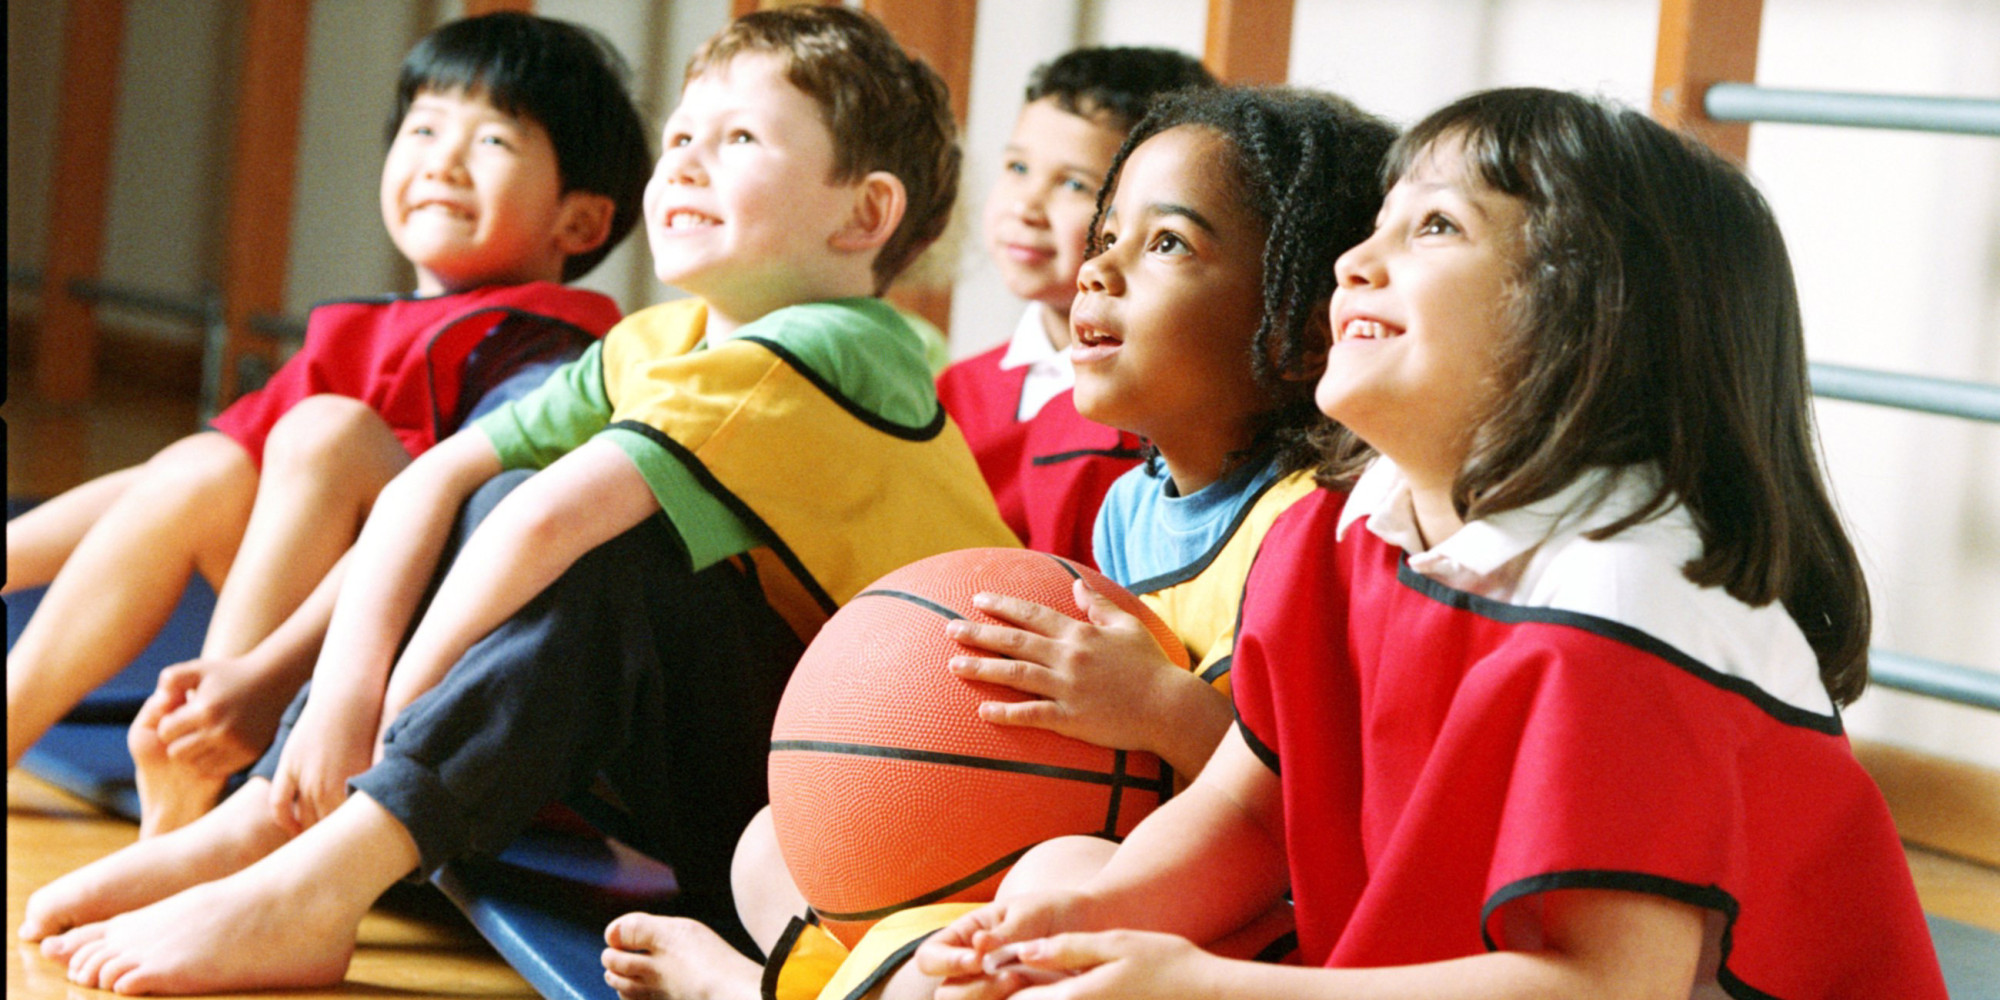 Program Indicates Older Kids Can Teach Younger Peers To